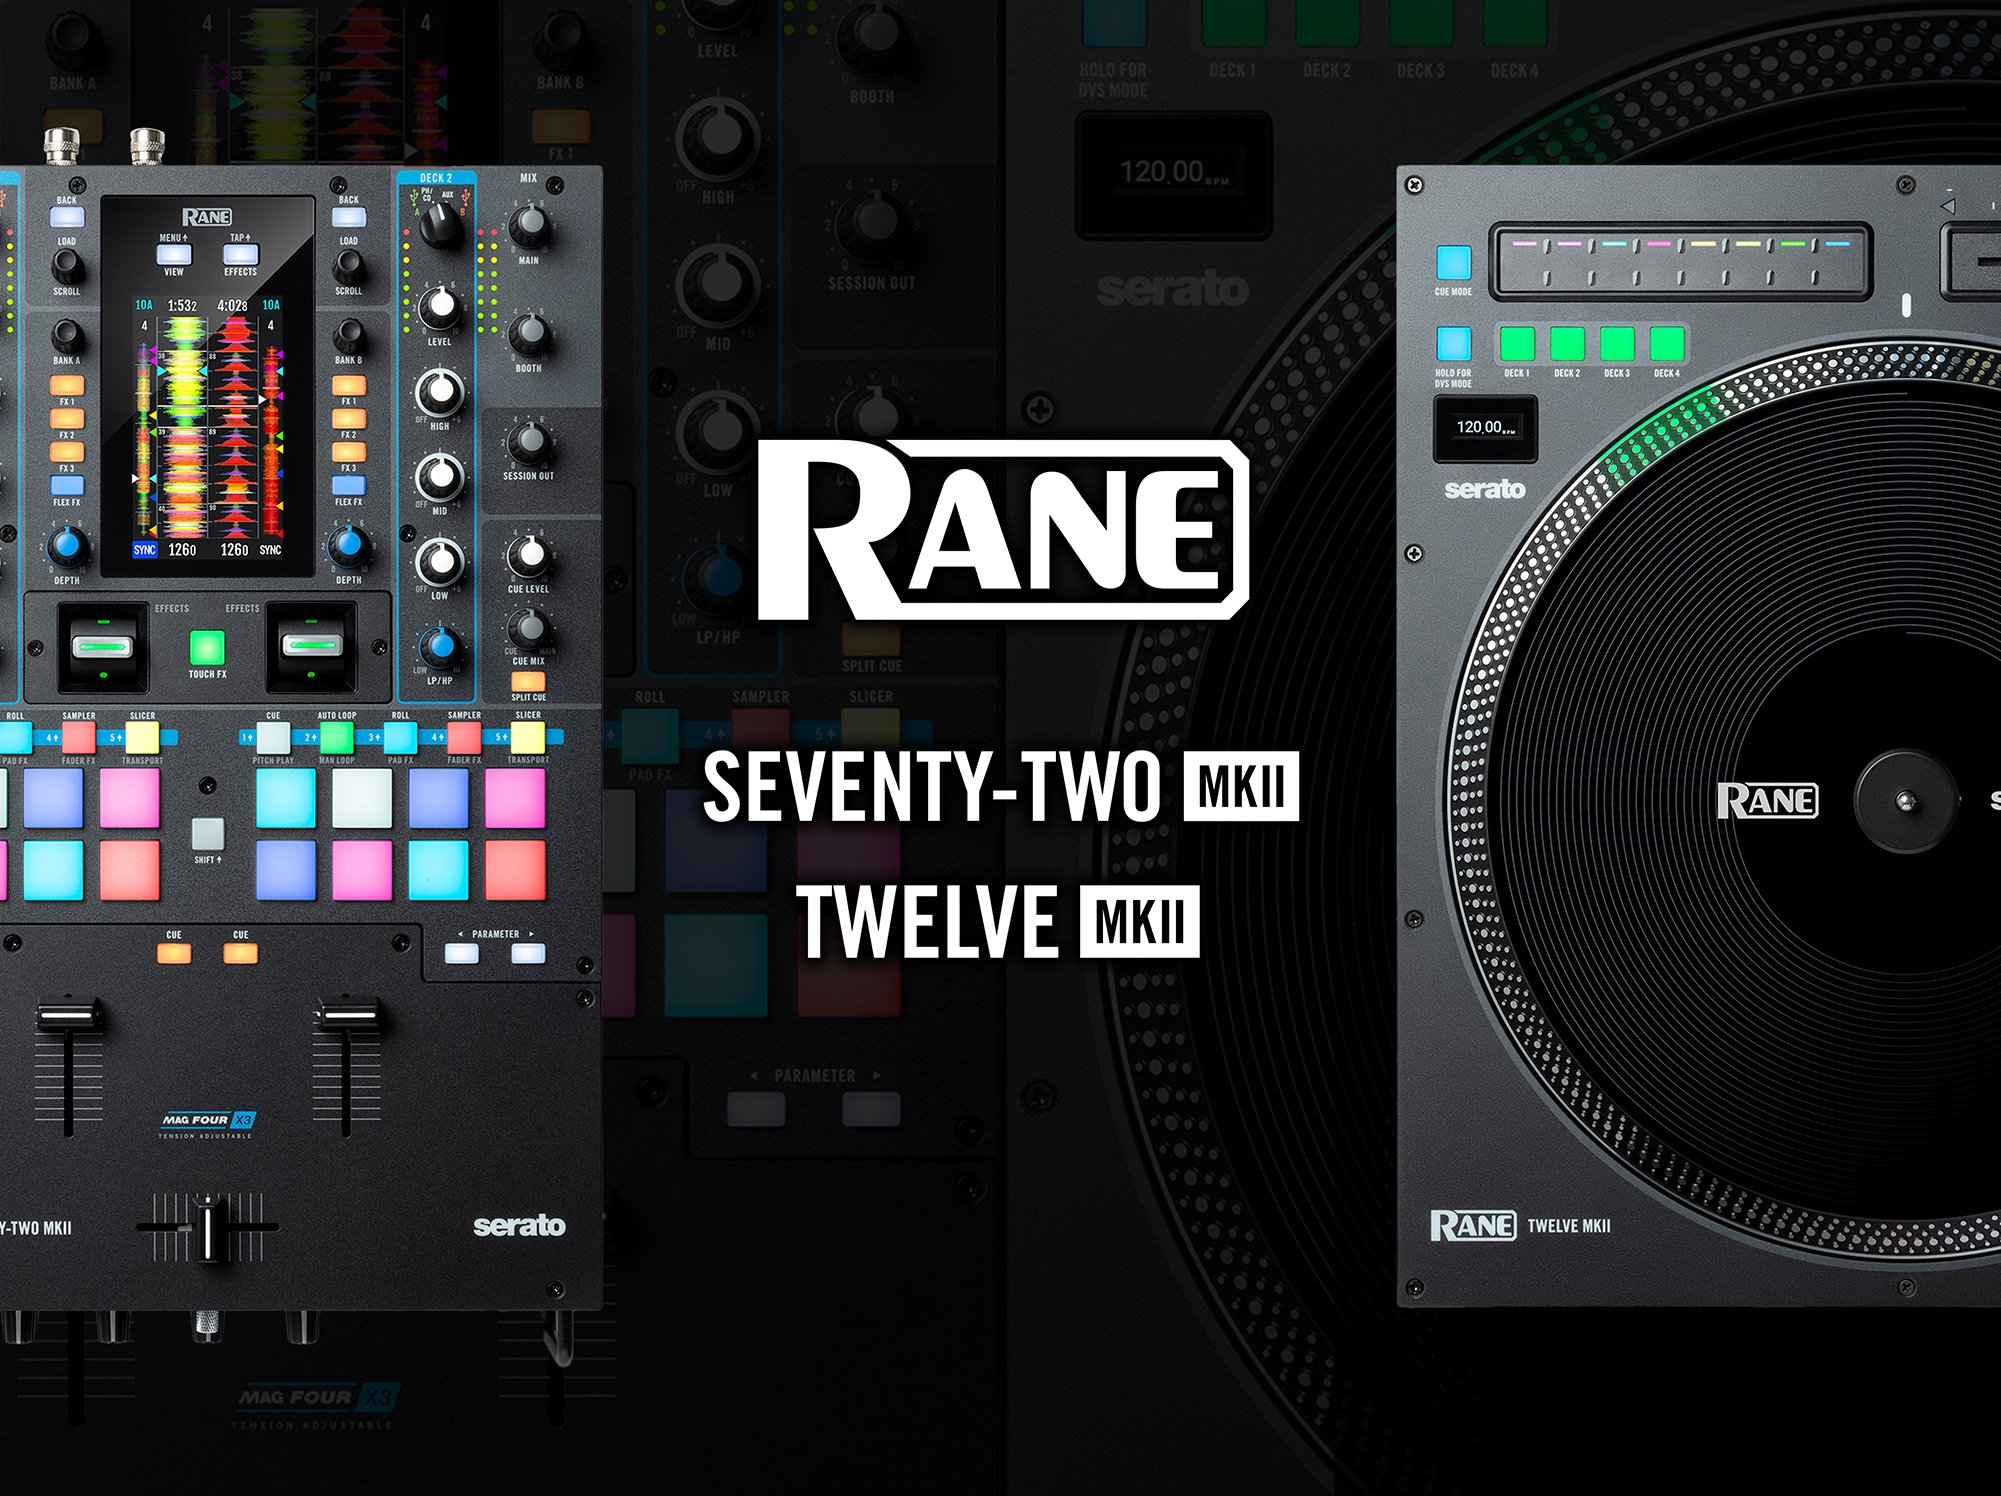 Rane SEVENTY-TWO MKII and TWELVE MKII for more than just Serato 8